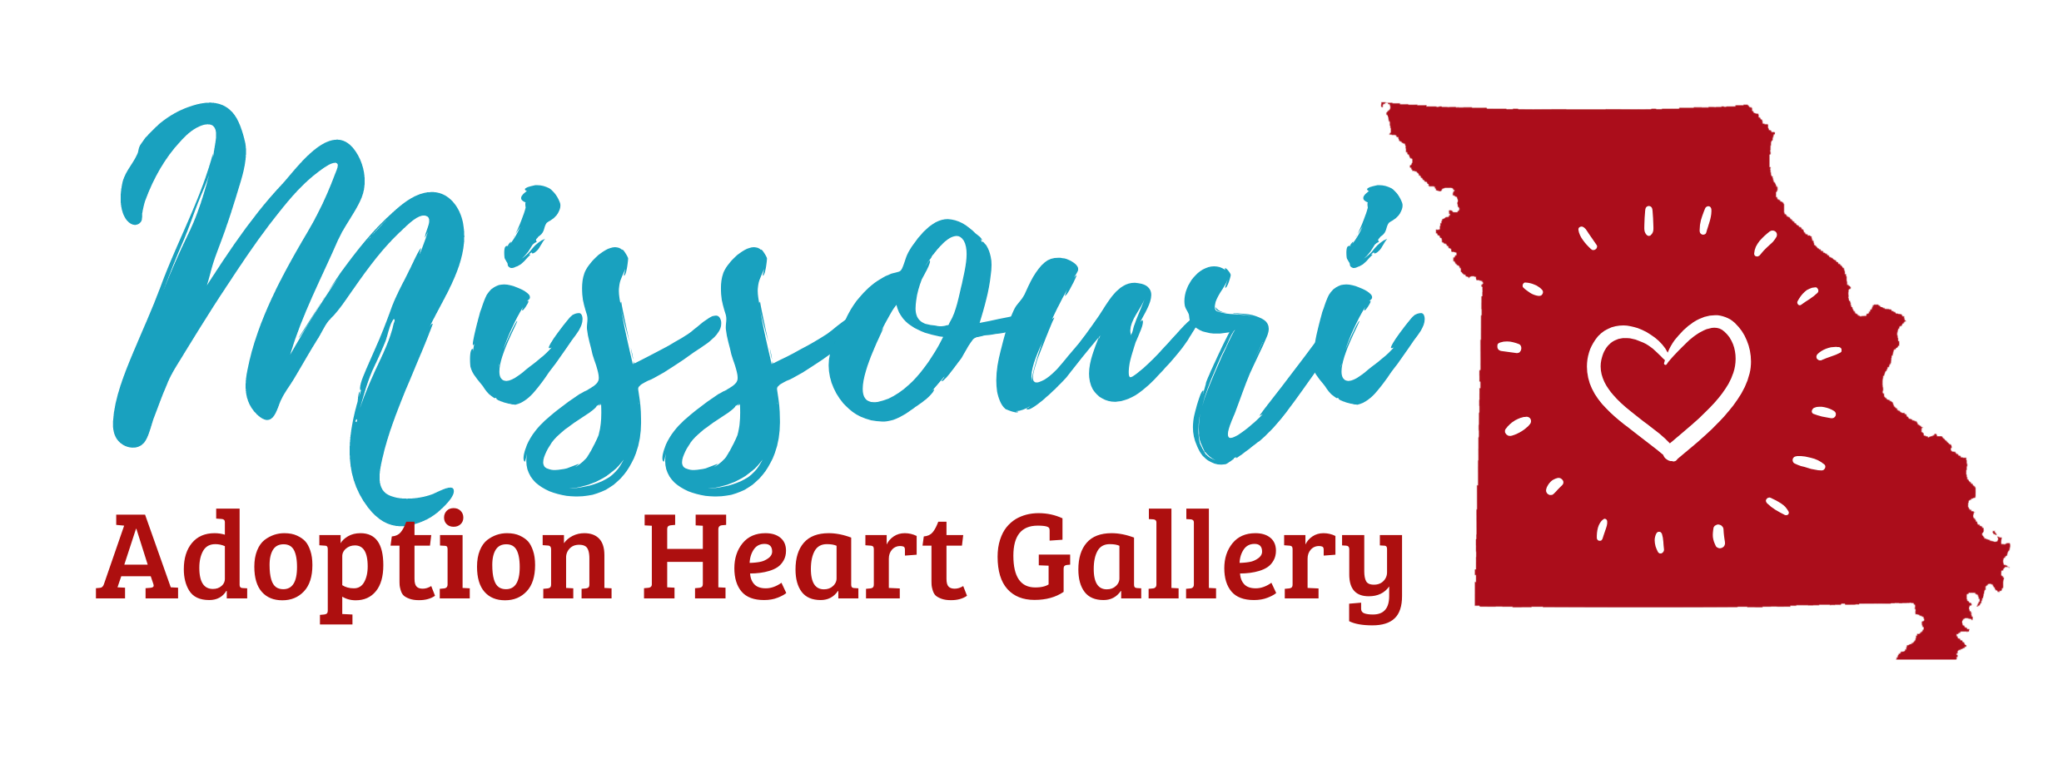 Missouri Heart Gallery Logo